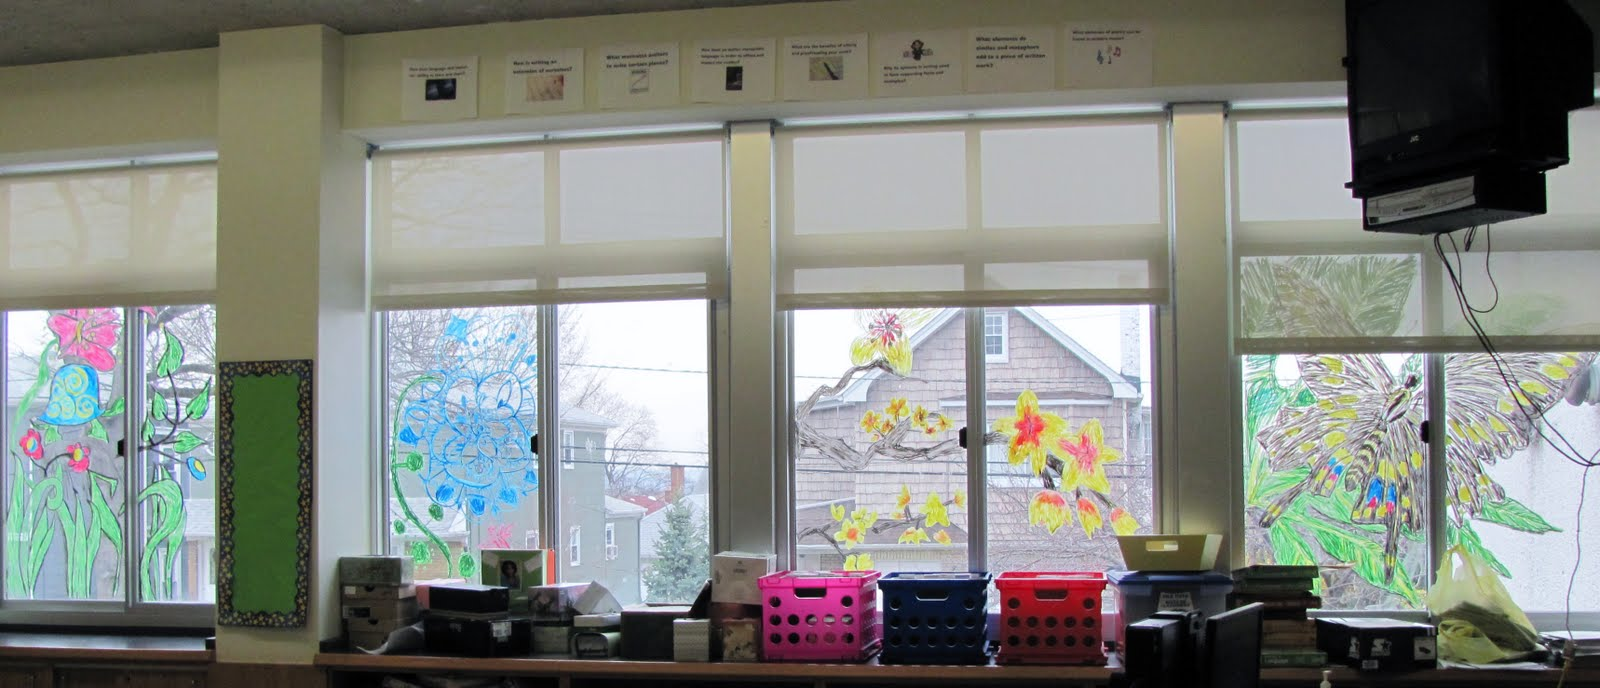 Classroom Decoration Window : How to decorate a classroom beautifully teaching tofu